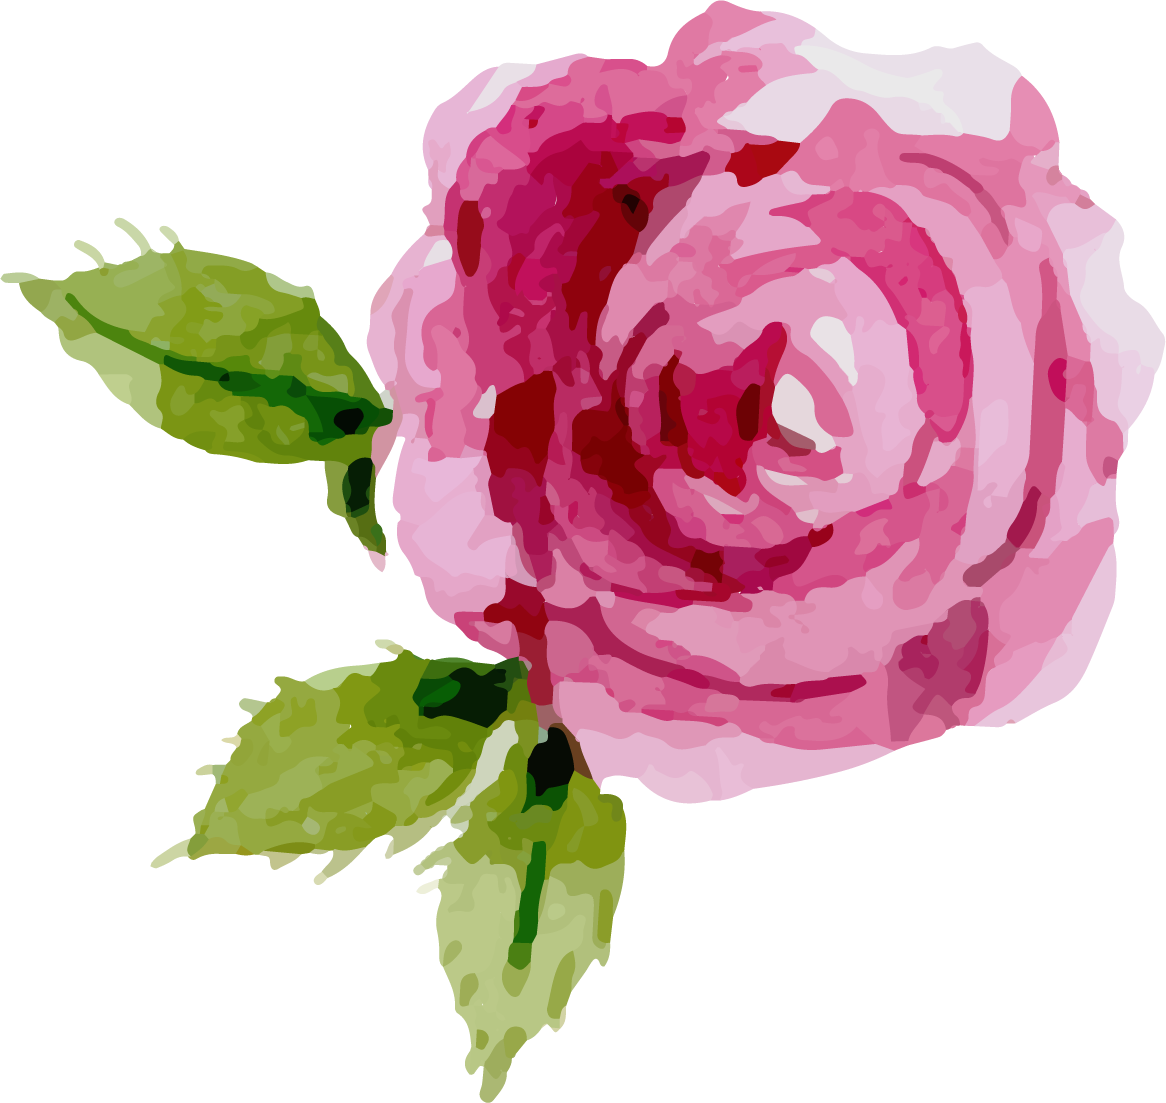 Clipart rose dome. Transparent png images roses